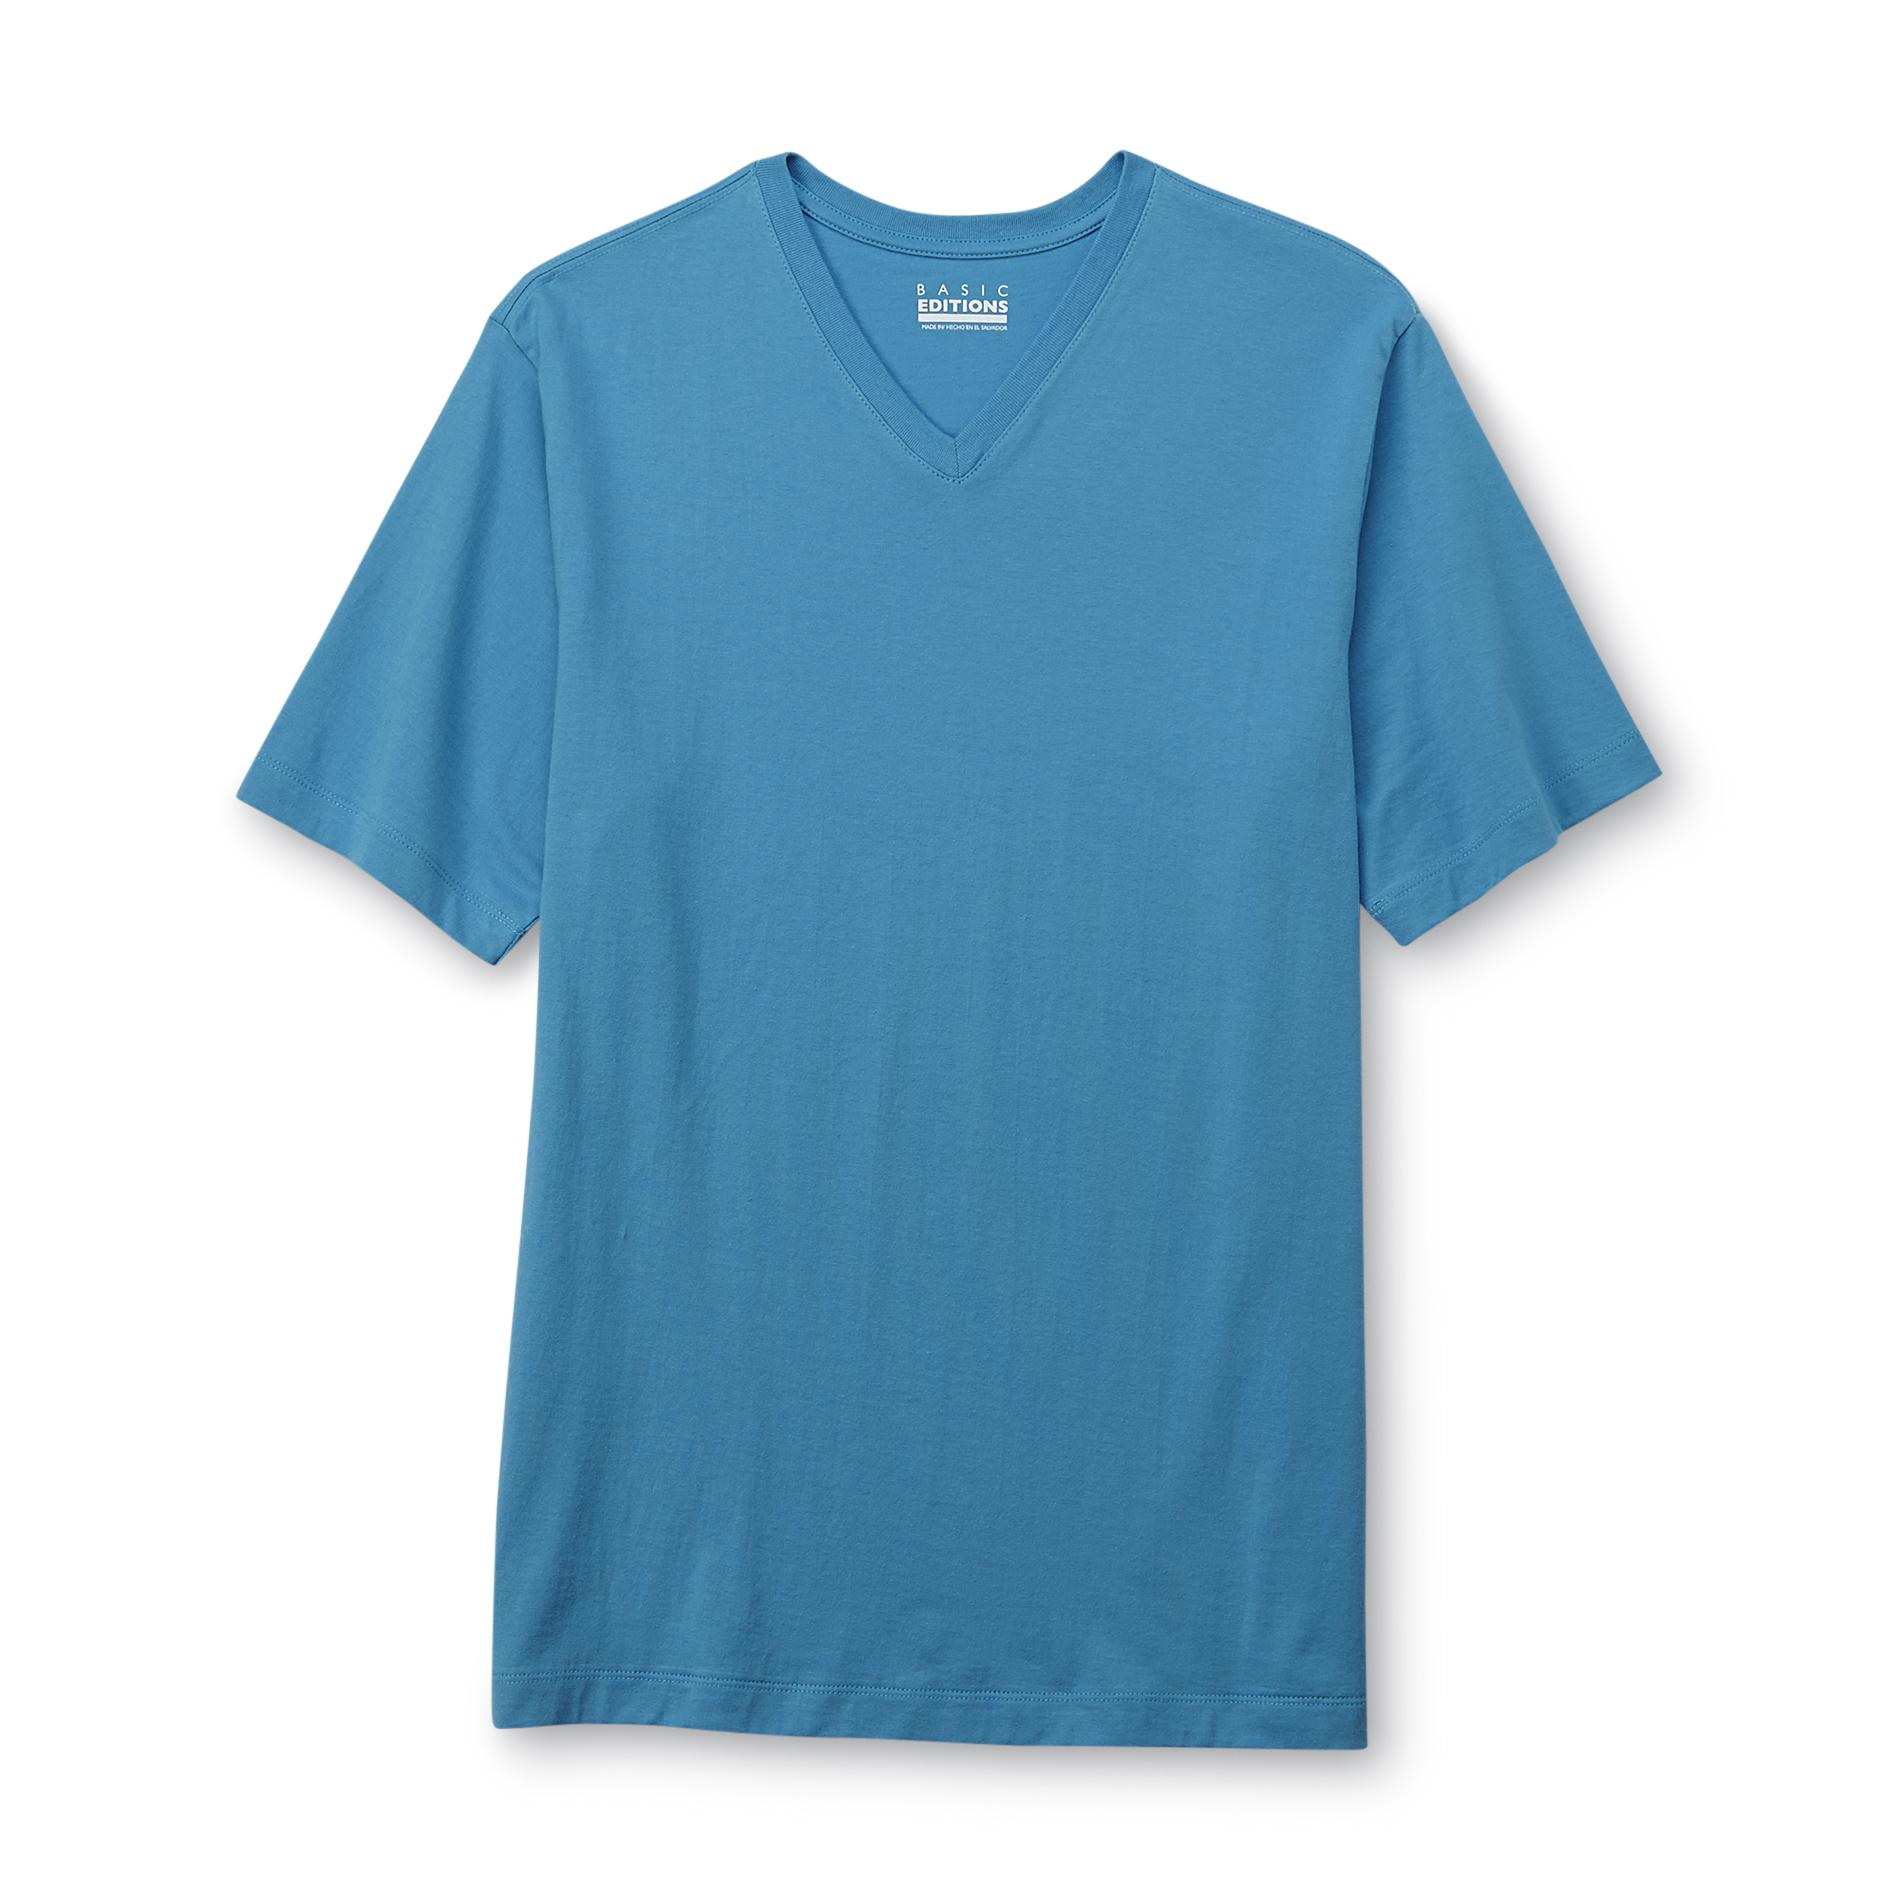 Basic Editions Men's V-Neck T-Shirt